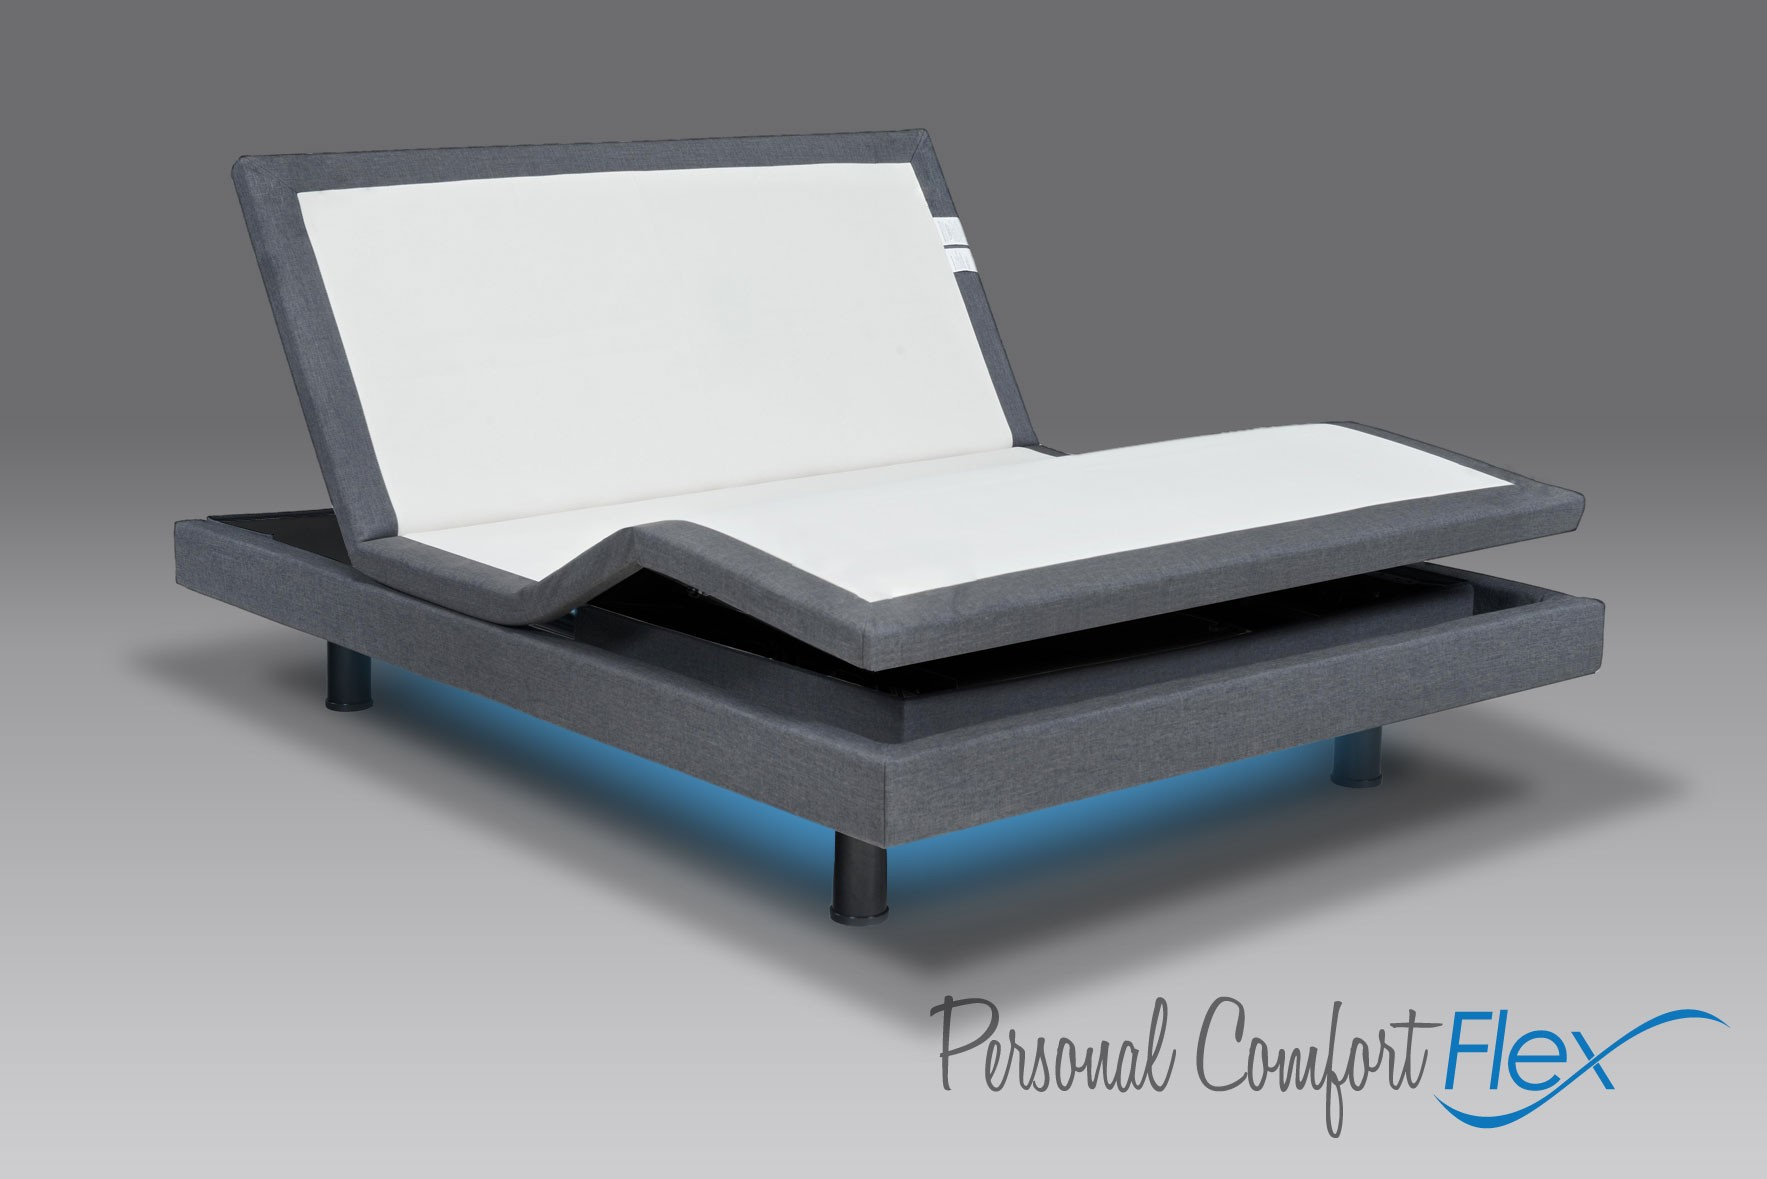 Premiere Designer Adjustable Bed Flex Base 7